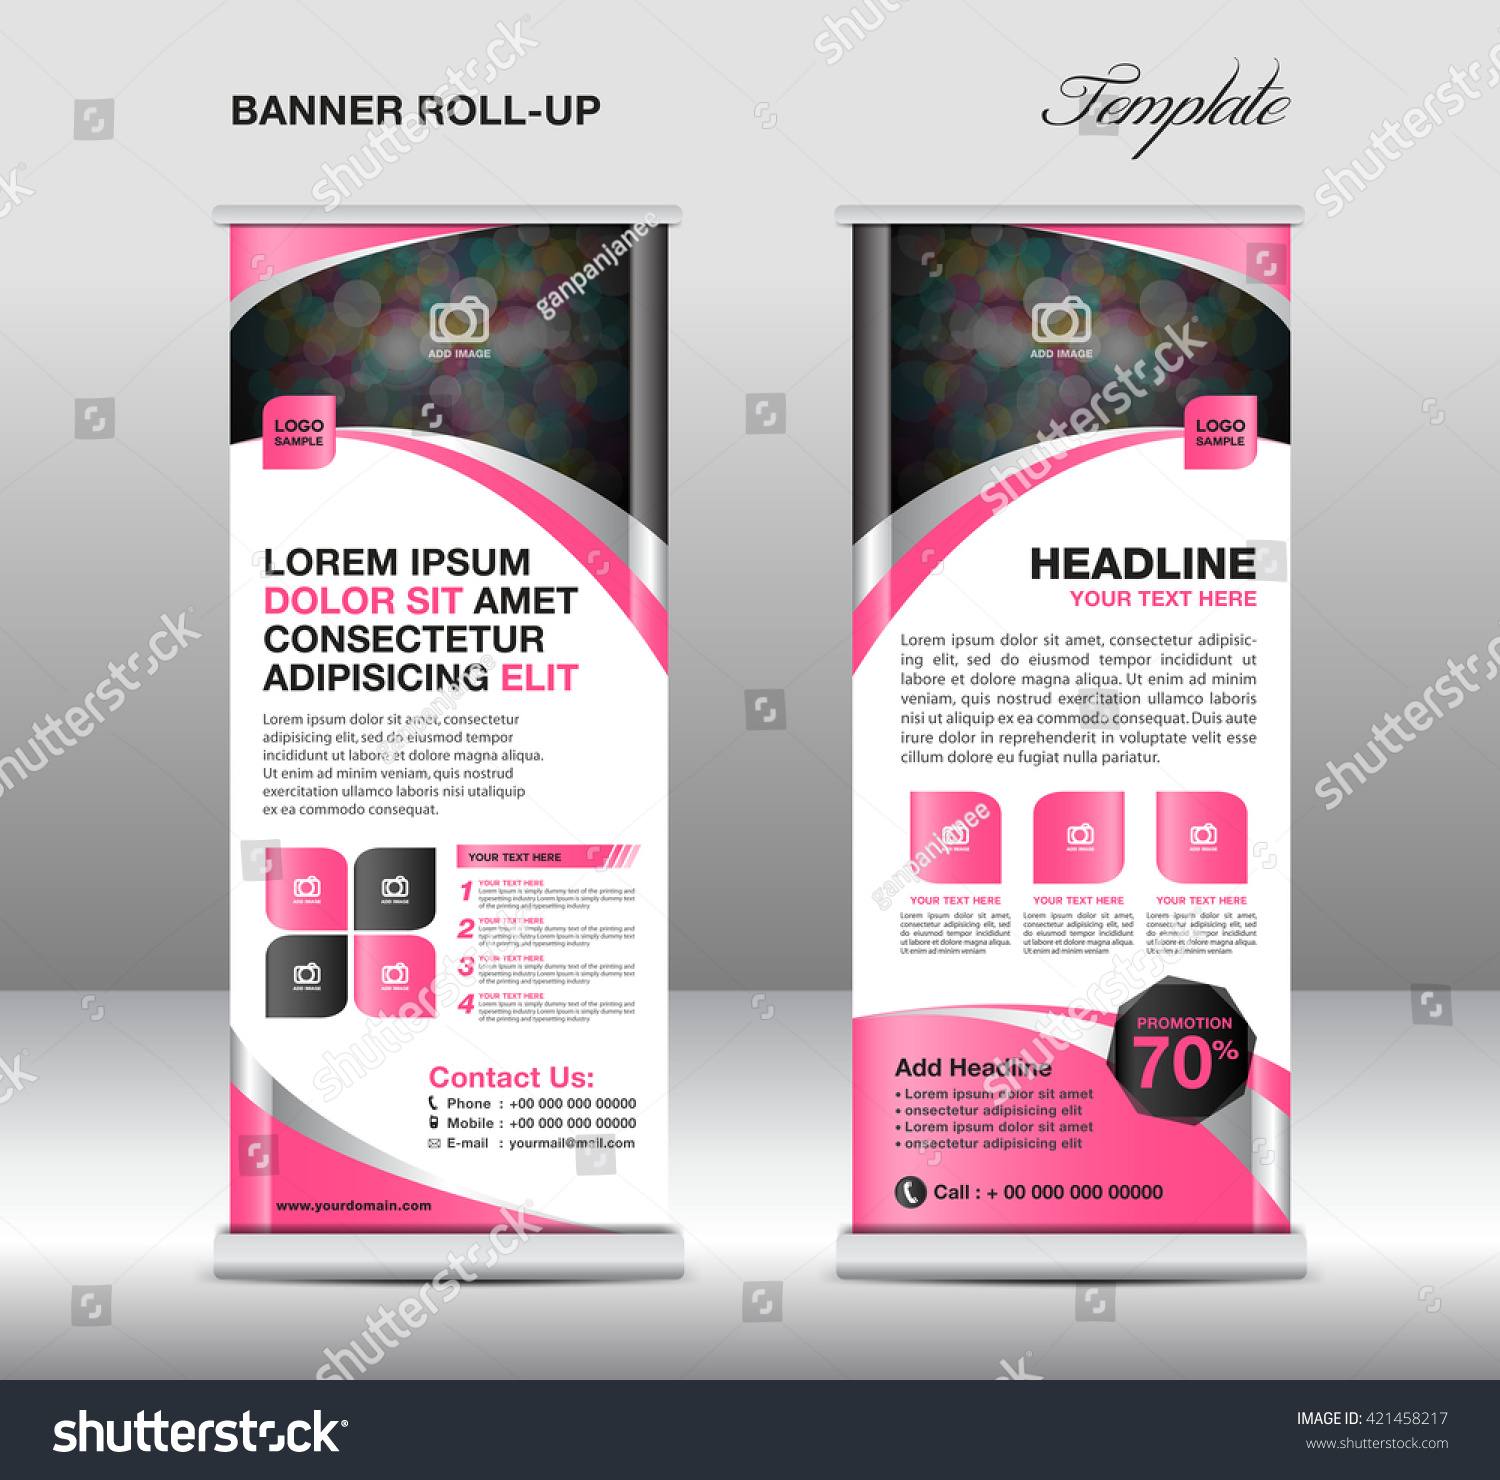 roll banner template stand design advertisement stock vector roll up banner template stand design advertisement flyer display vector